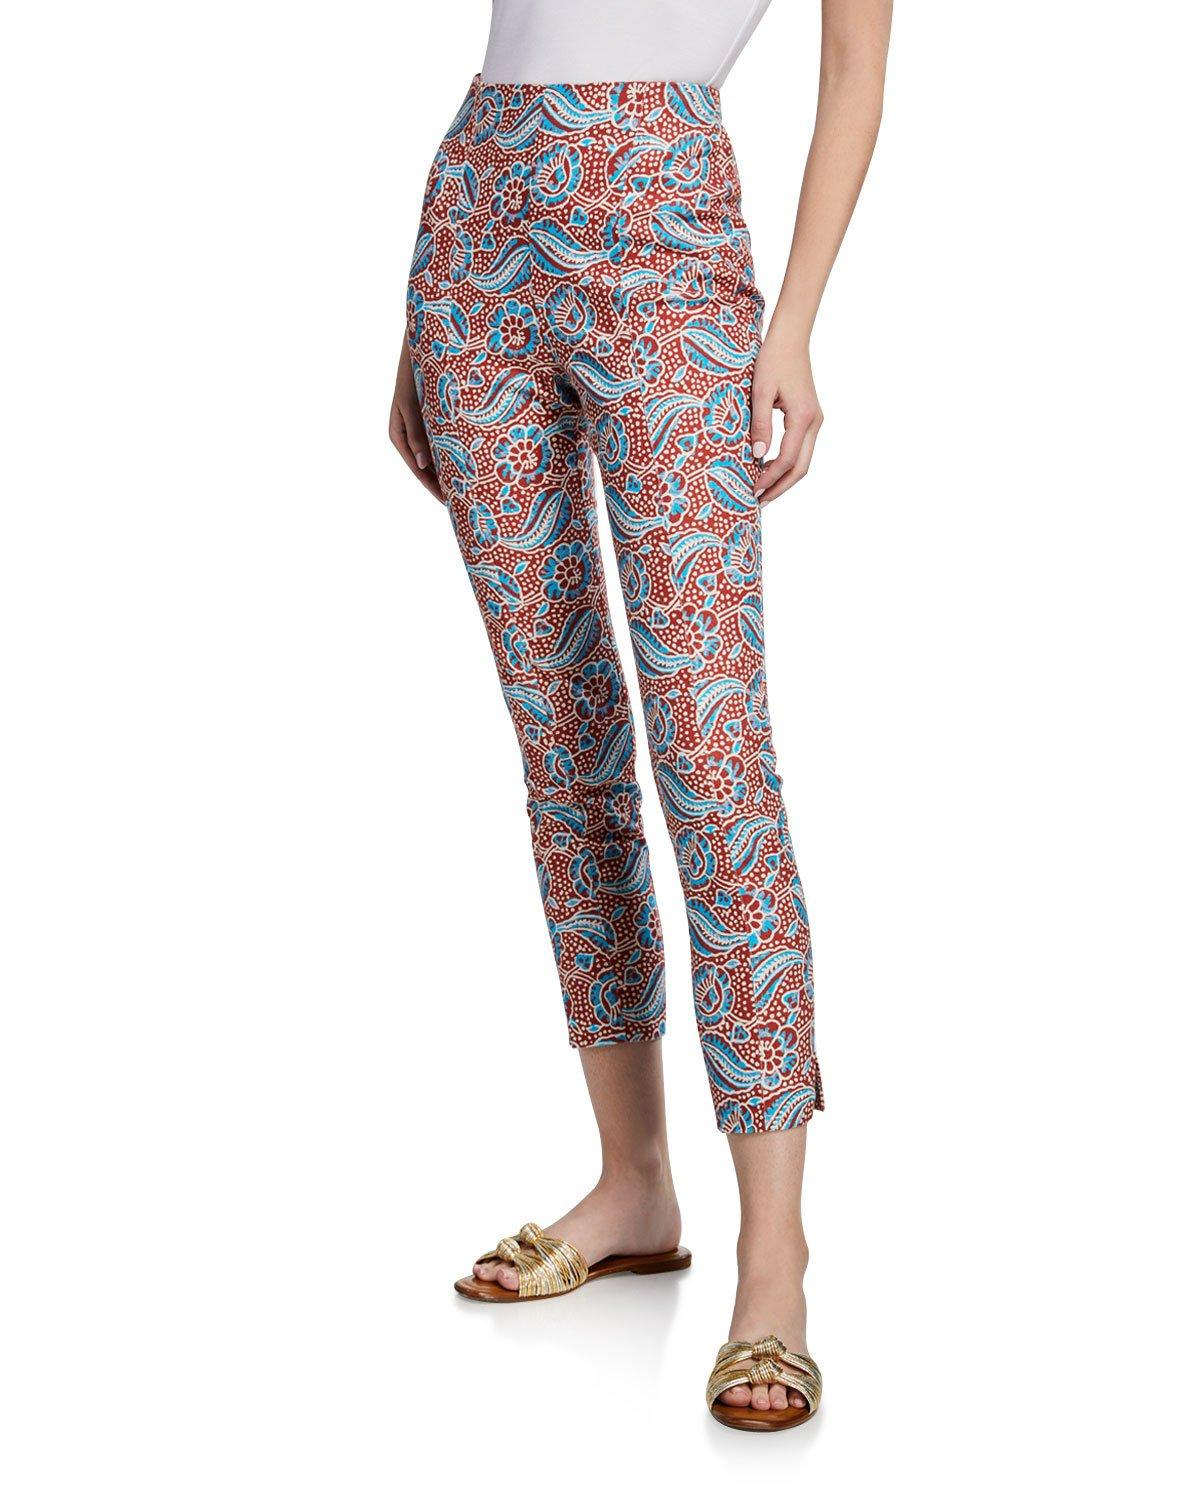 d520e7af40be Veronica Beard. Women's Skinny Fit Trousers